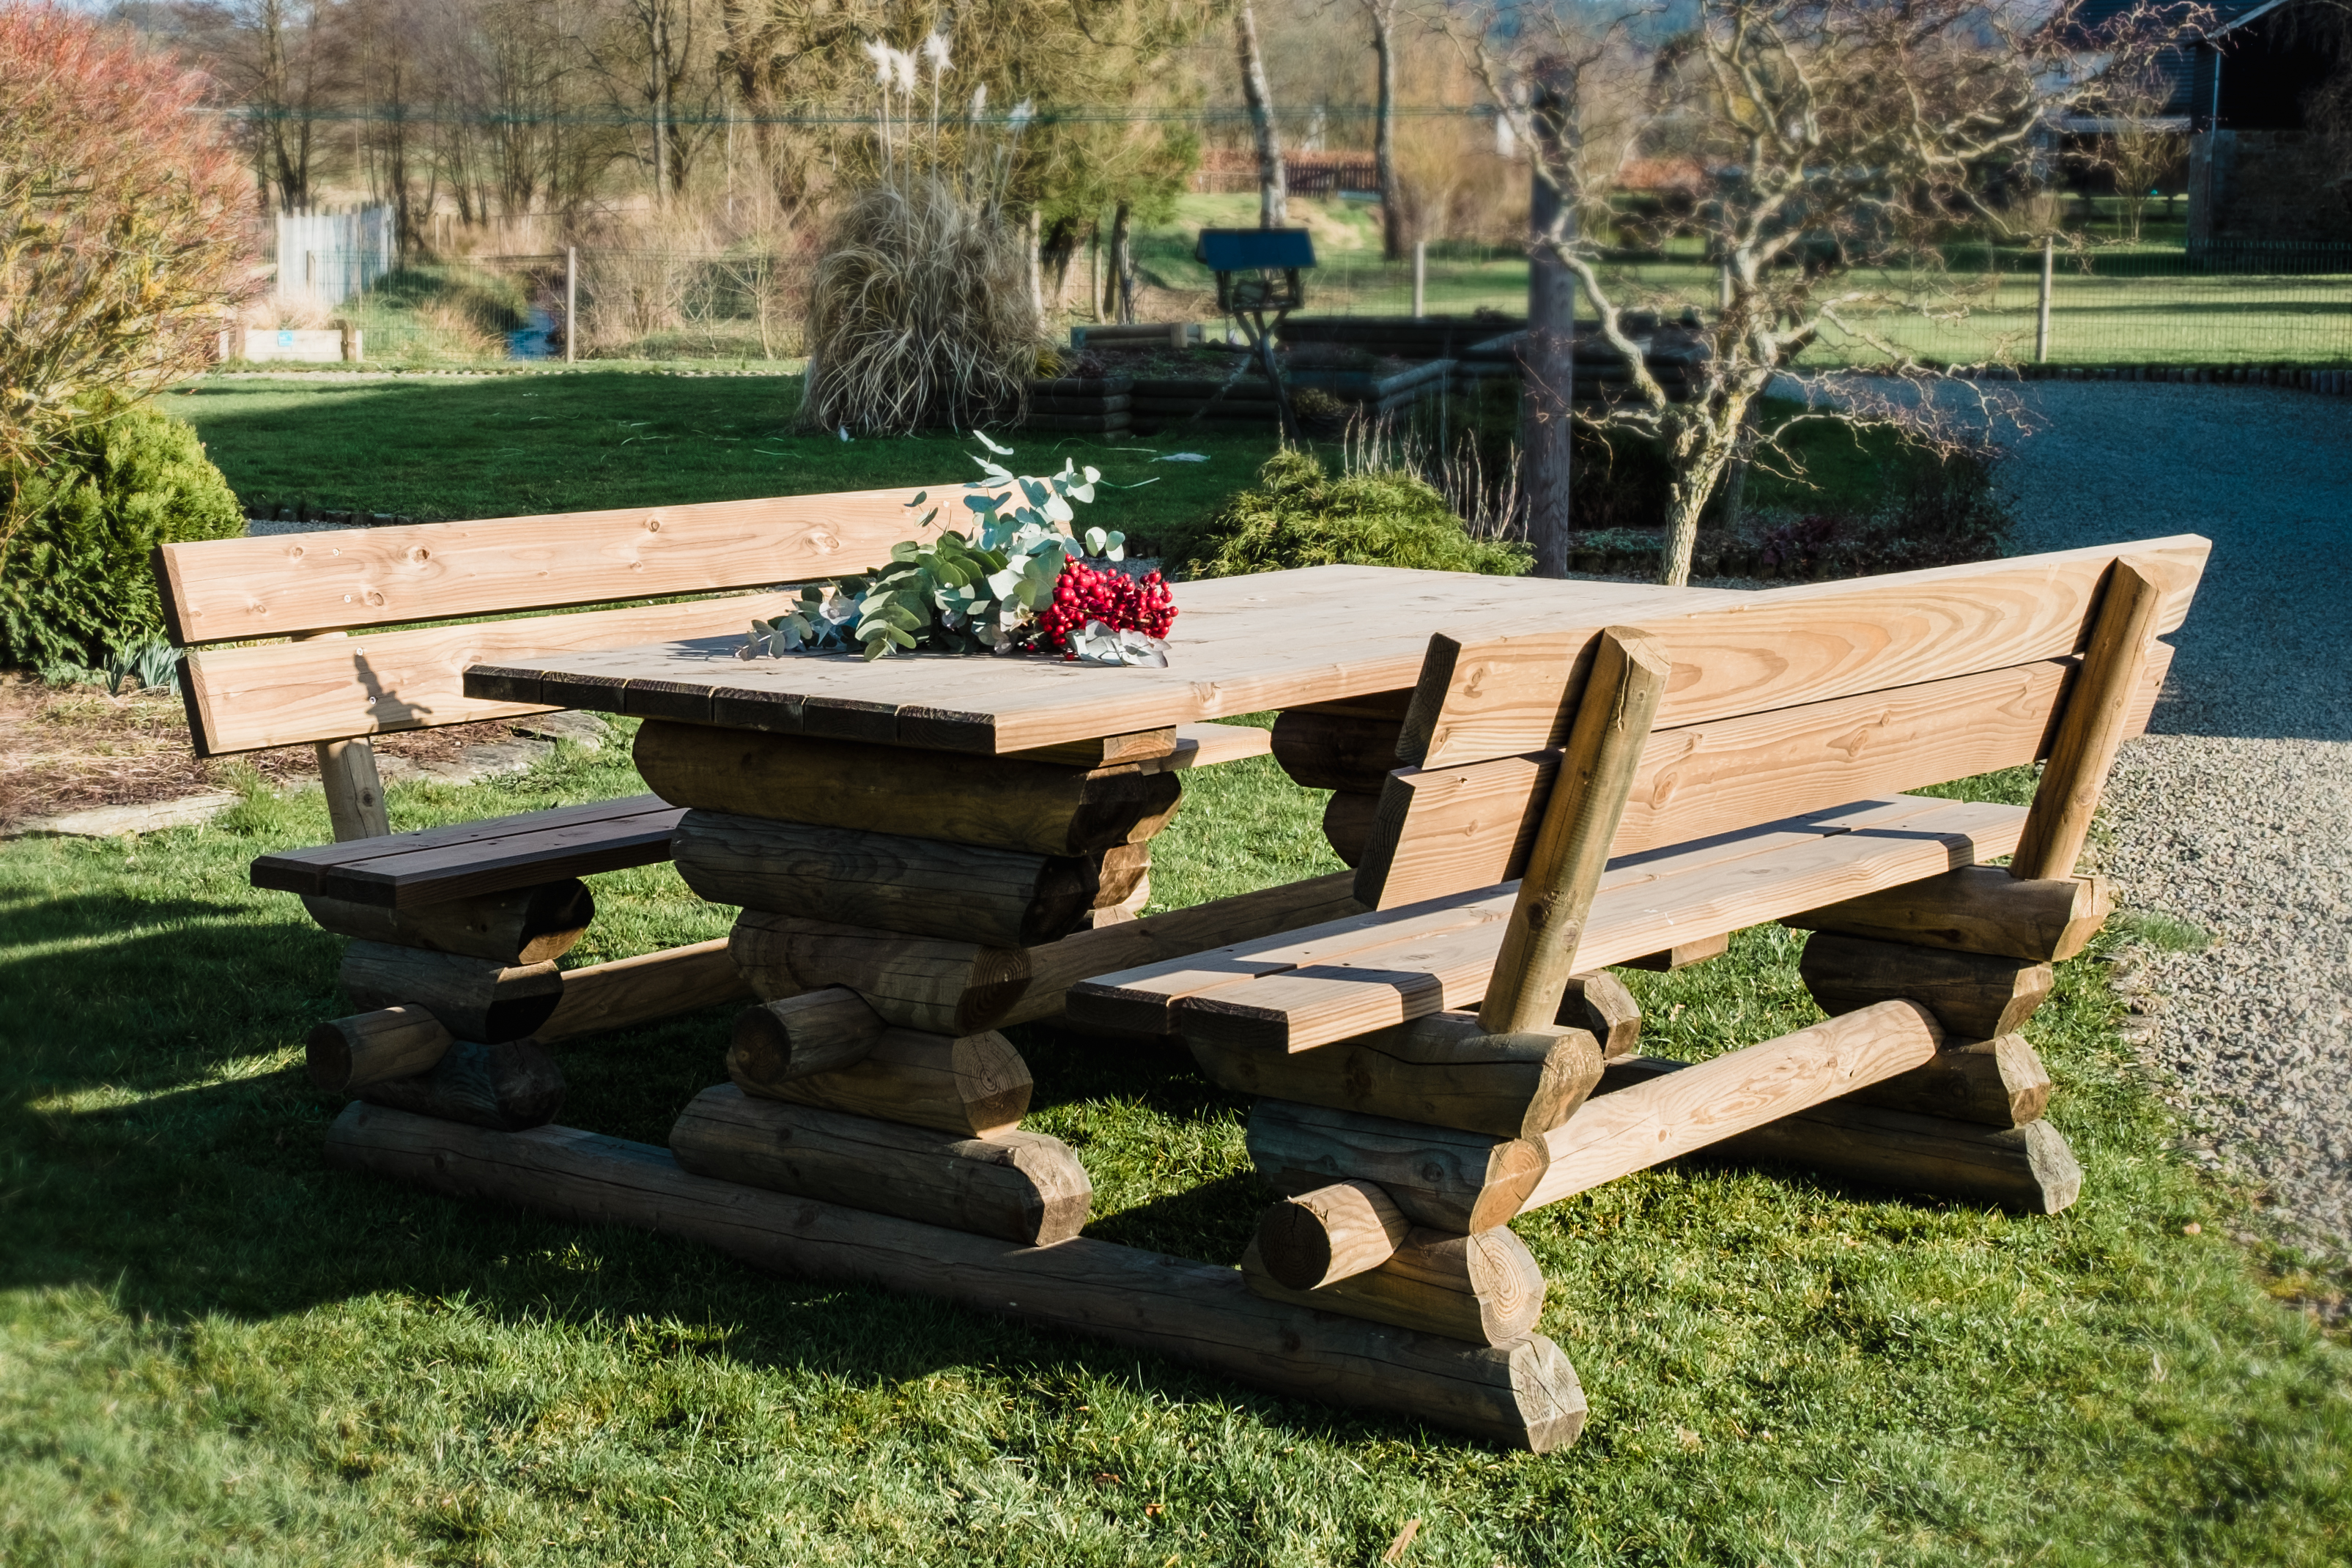 Garden furniture in wood - wooden garden table